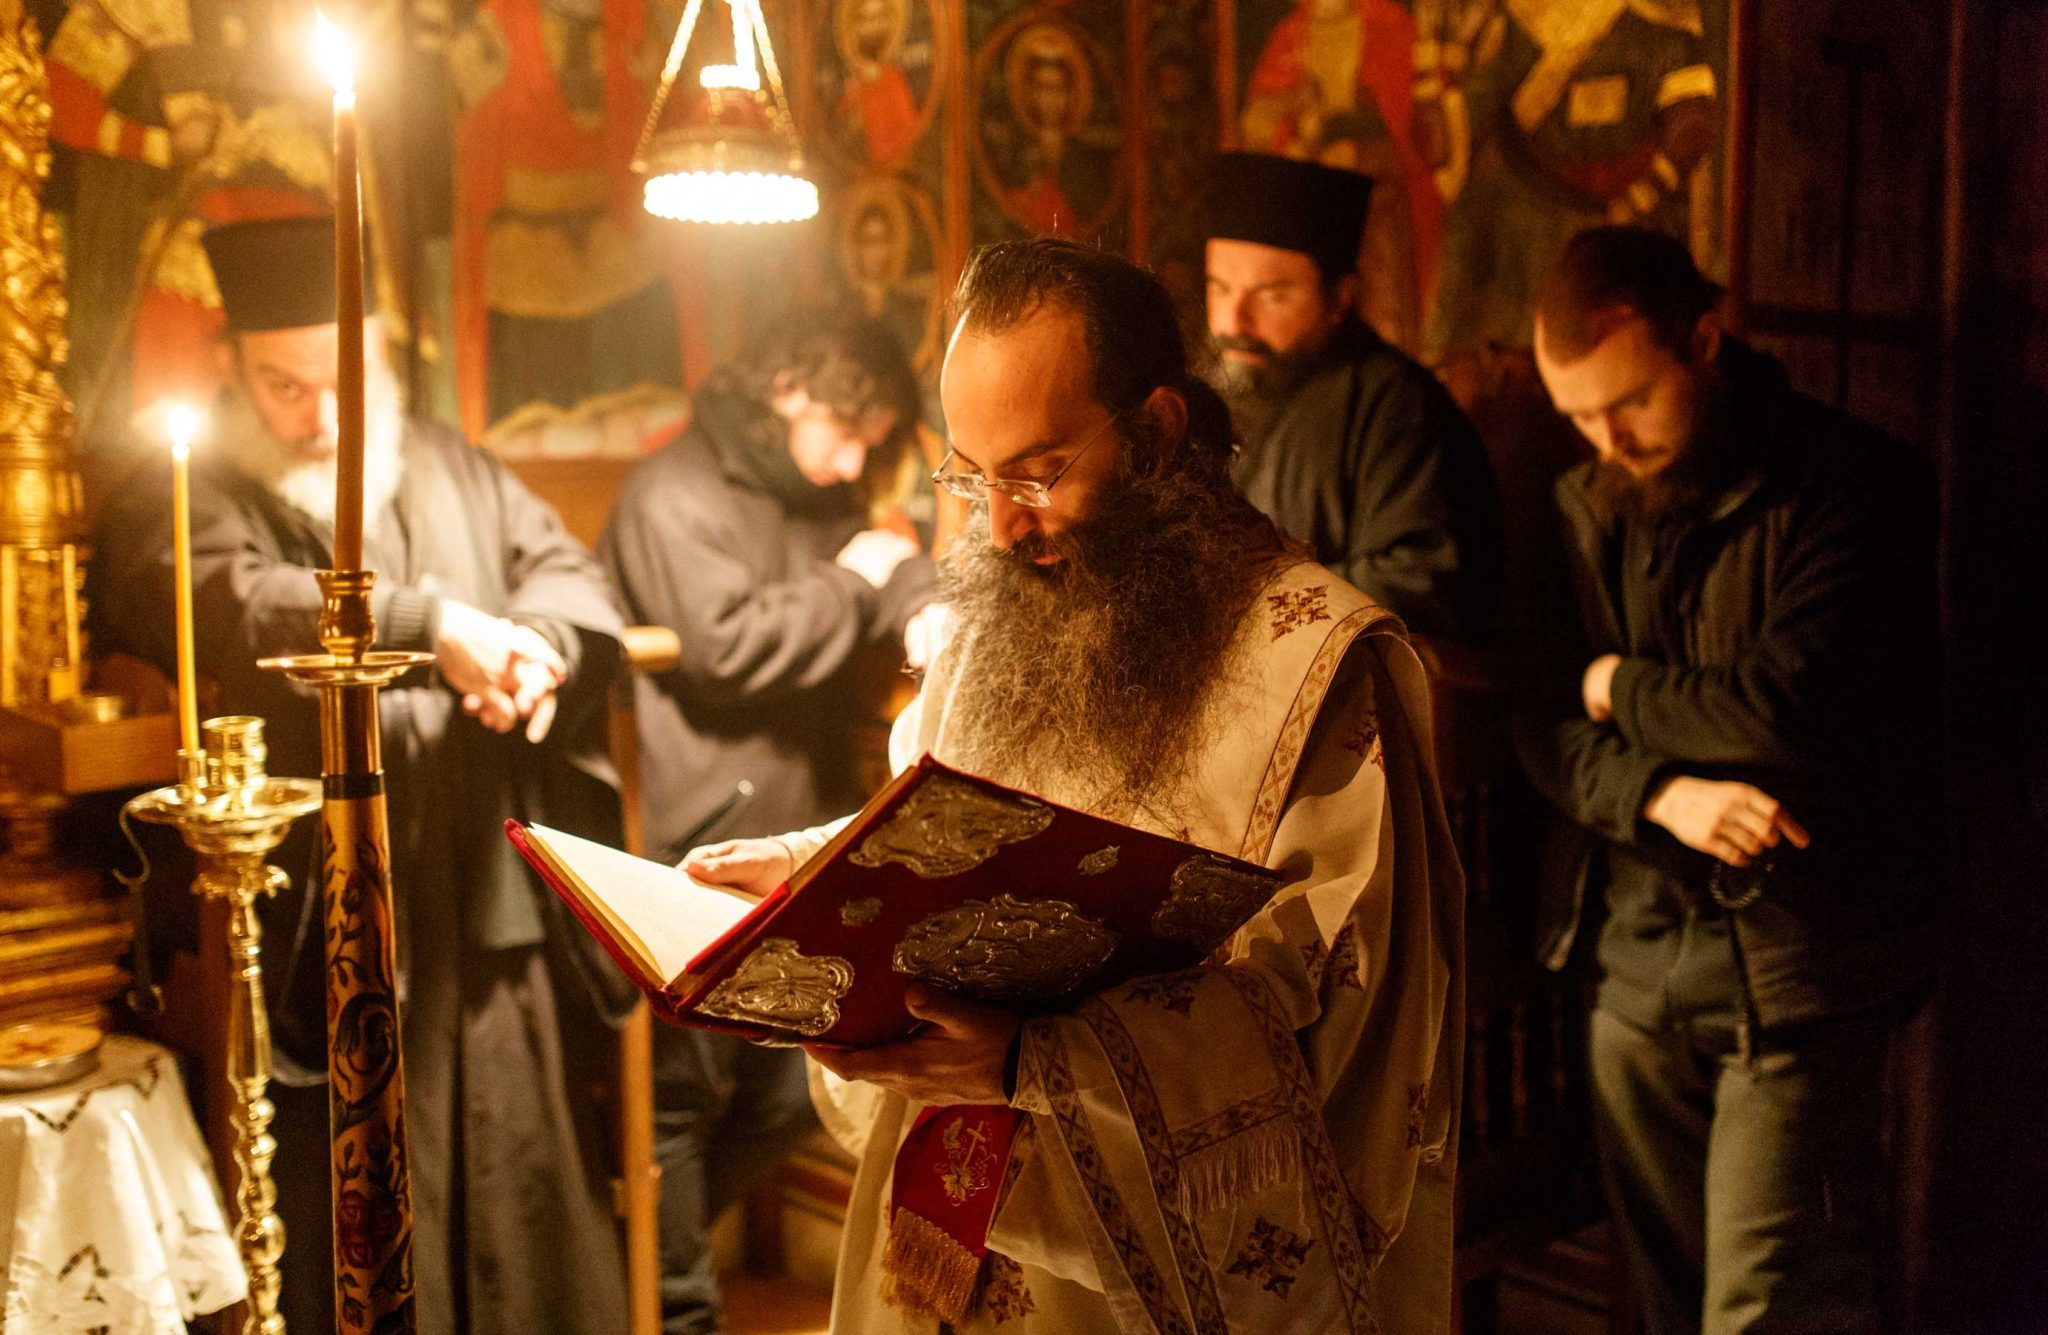 learn through pain - Ascetic Experience, Vatopaidi (Vatopedi), Mount Athos, Holy Mountain